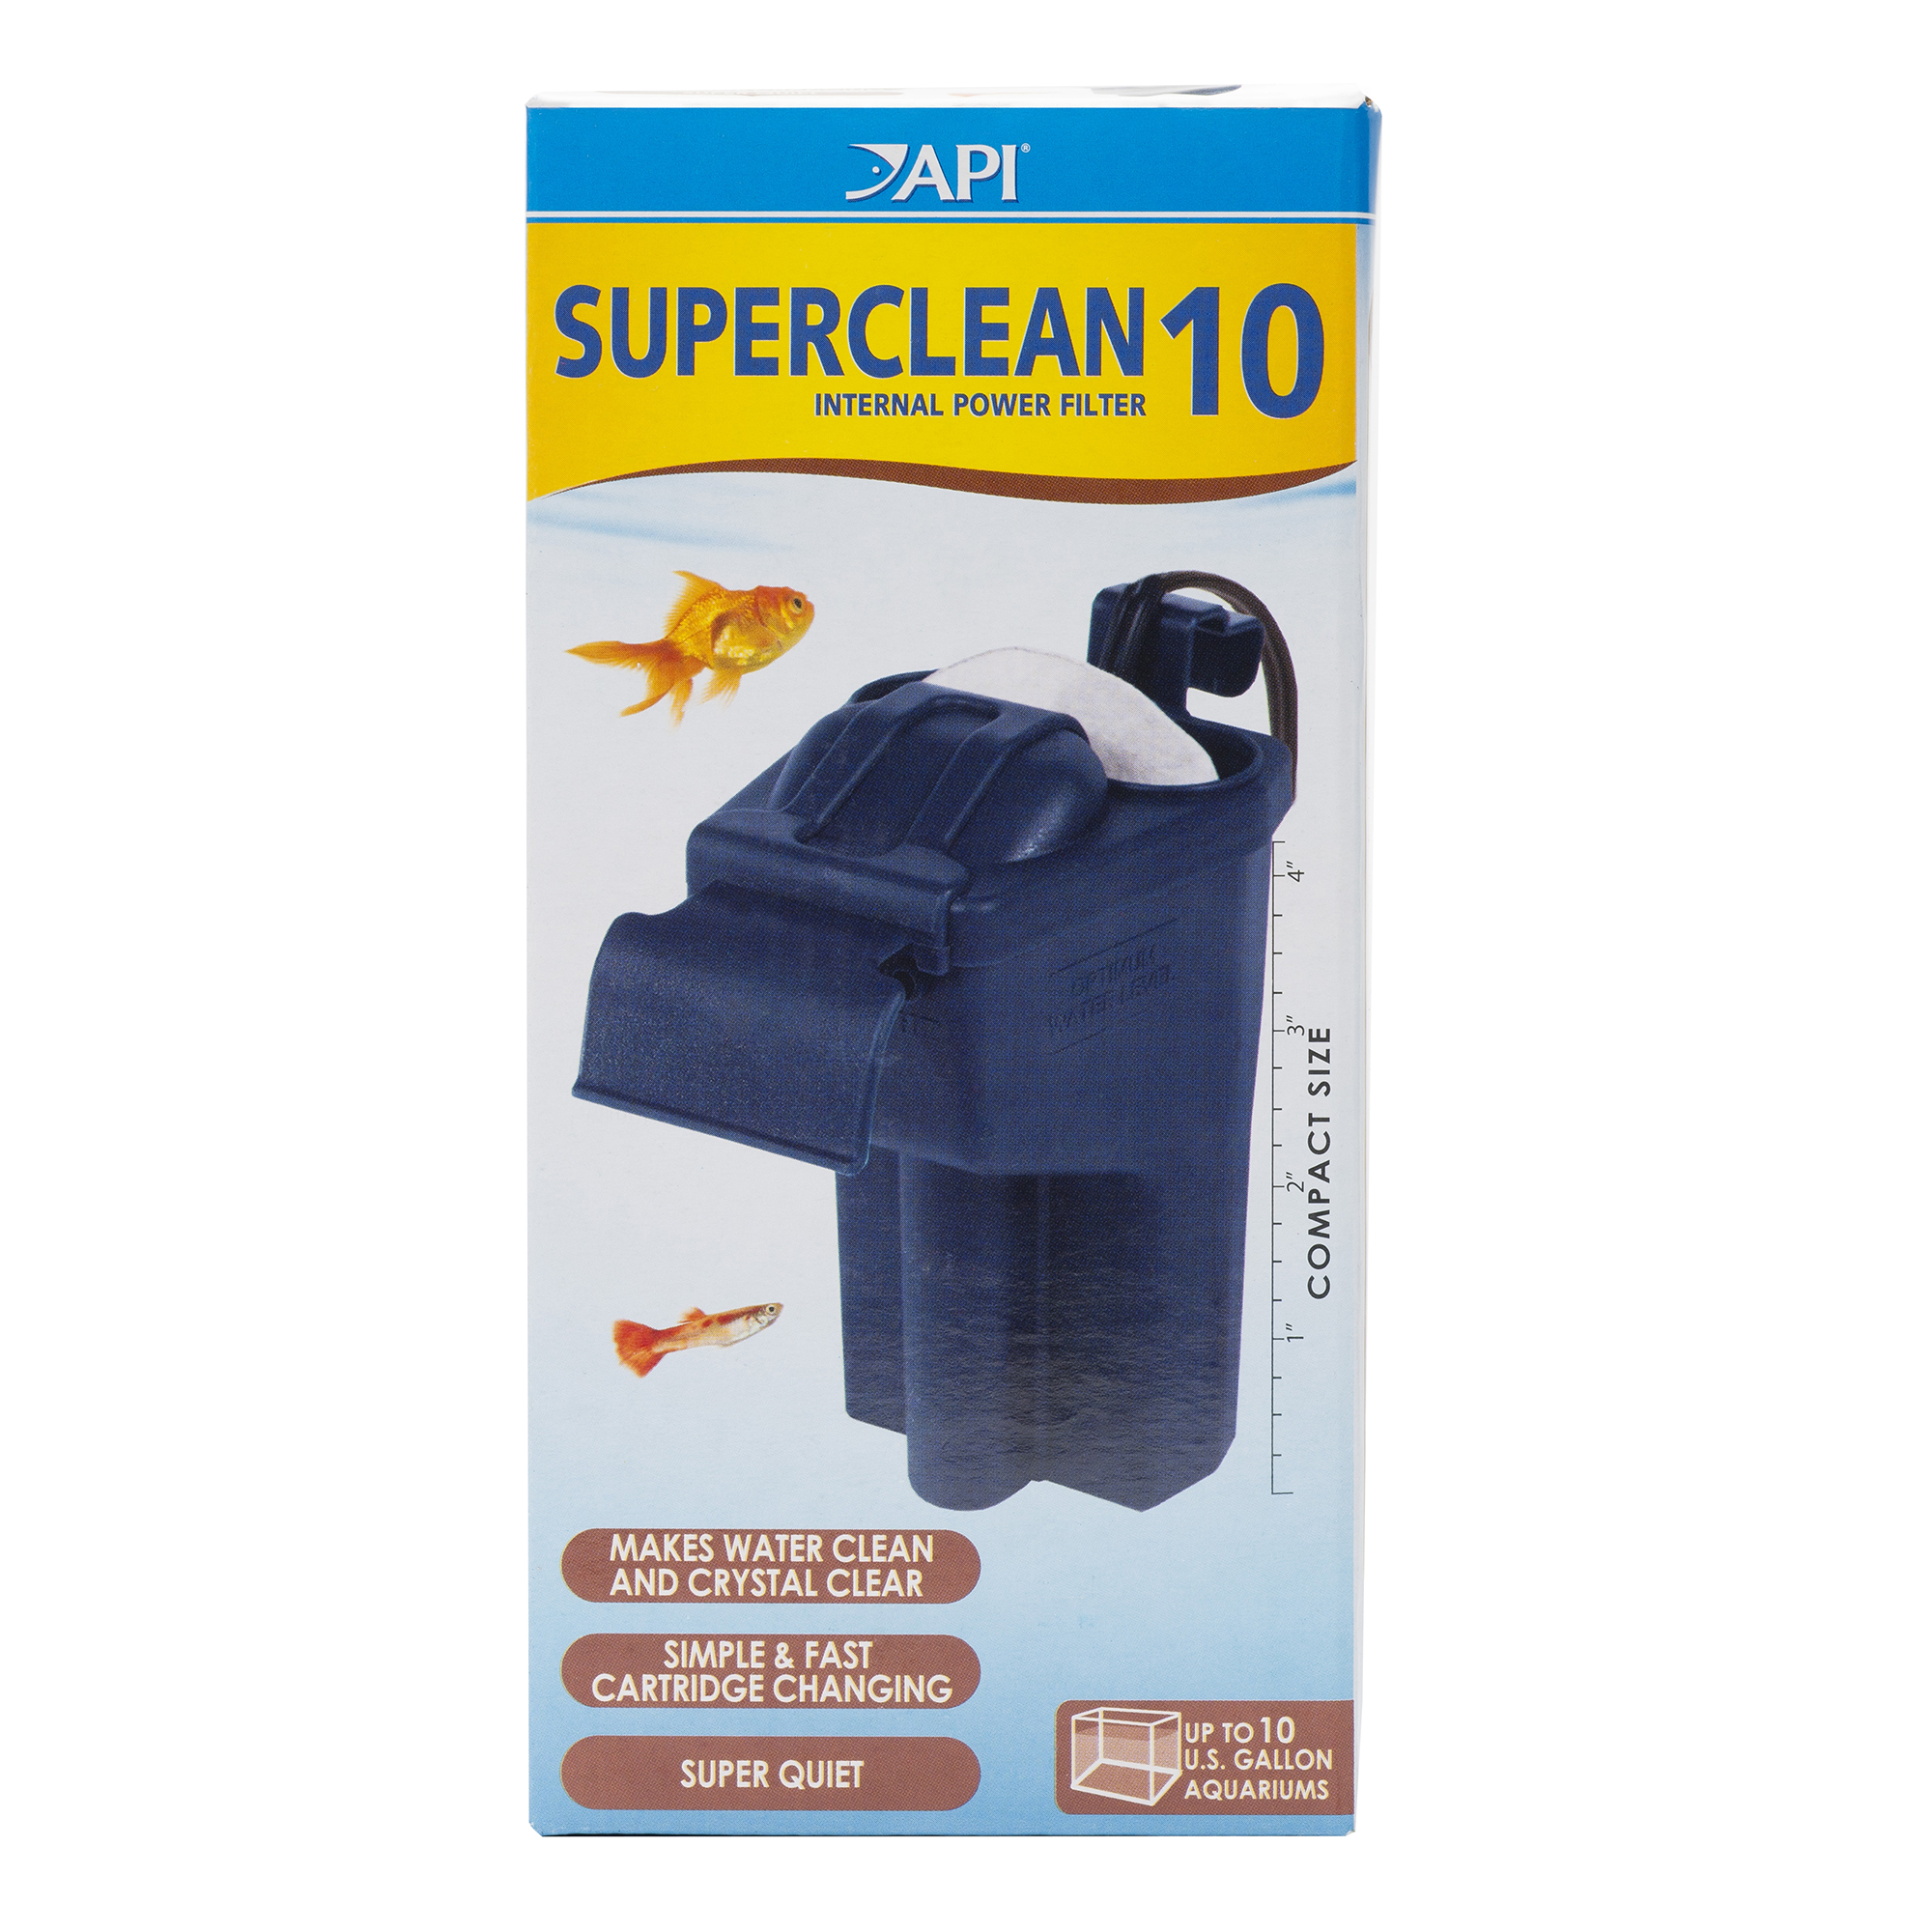 SUPERCLEAN 10 FILTER